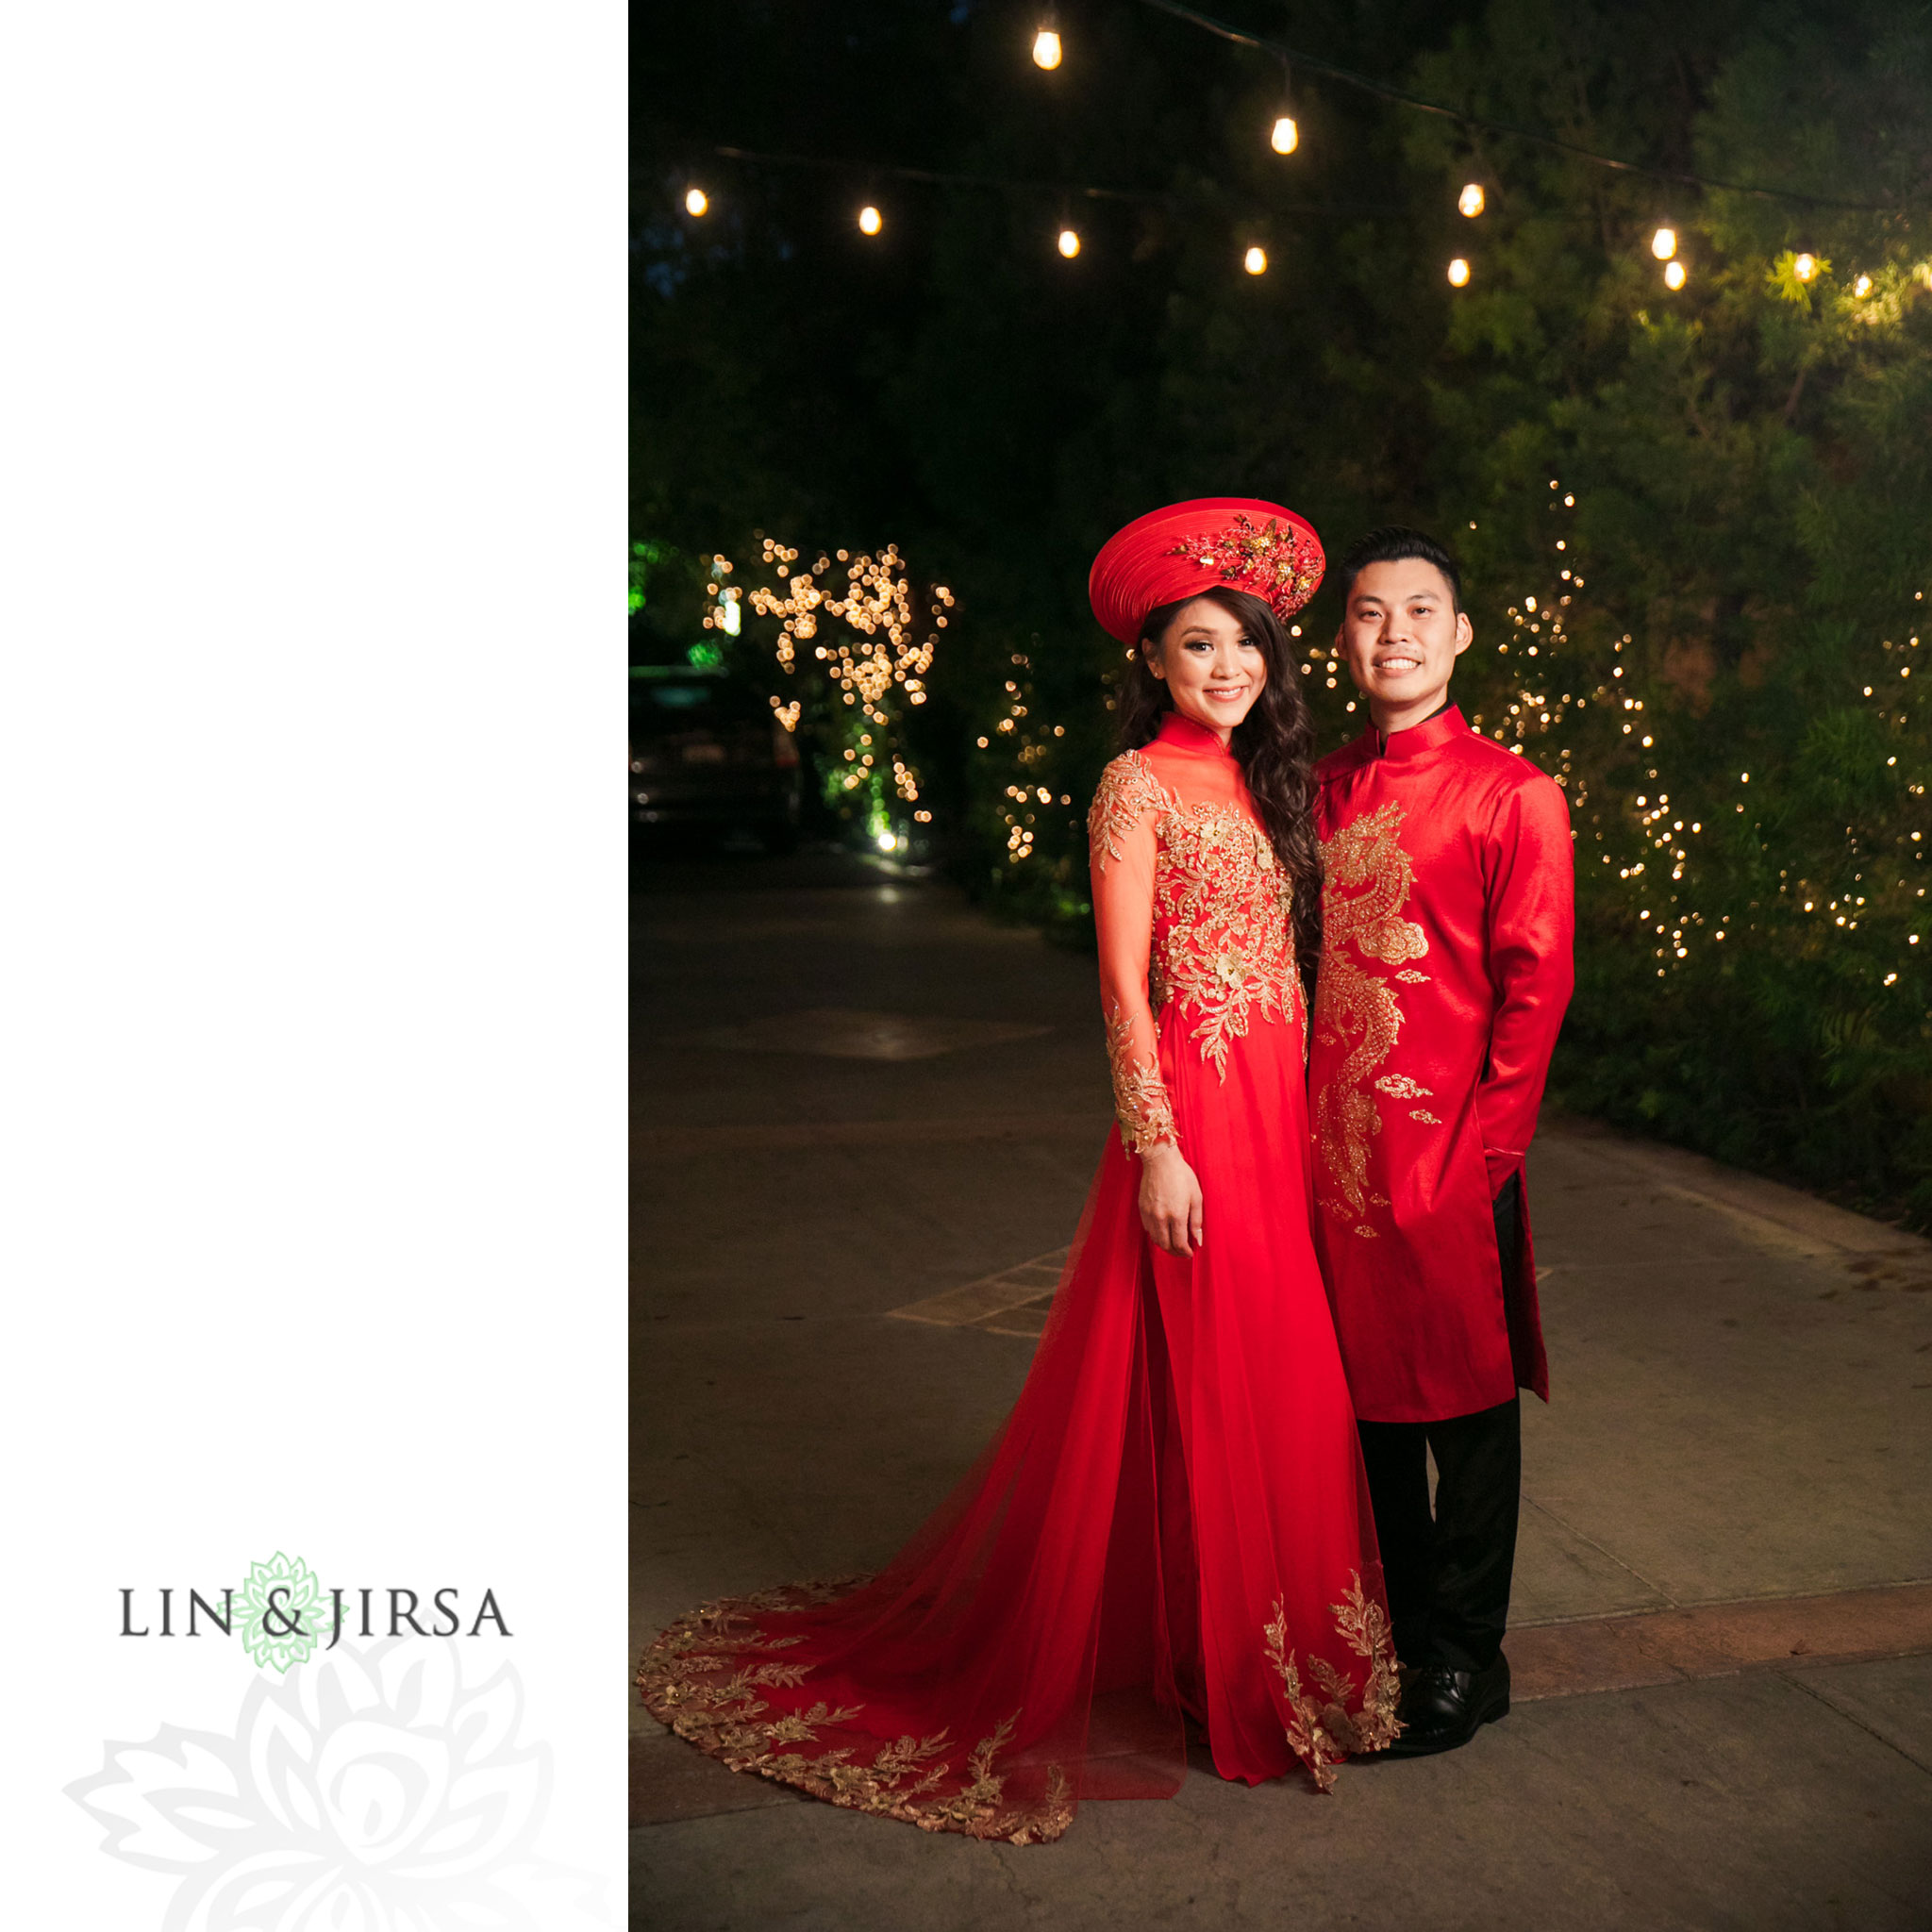 044 the villa at lifetime events westminster vietnamese wedding photography